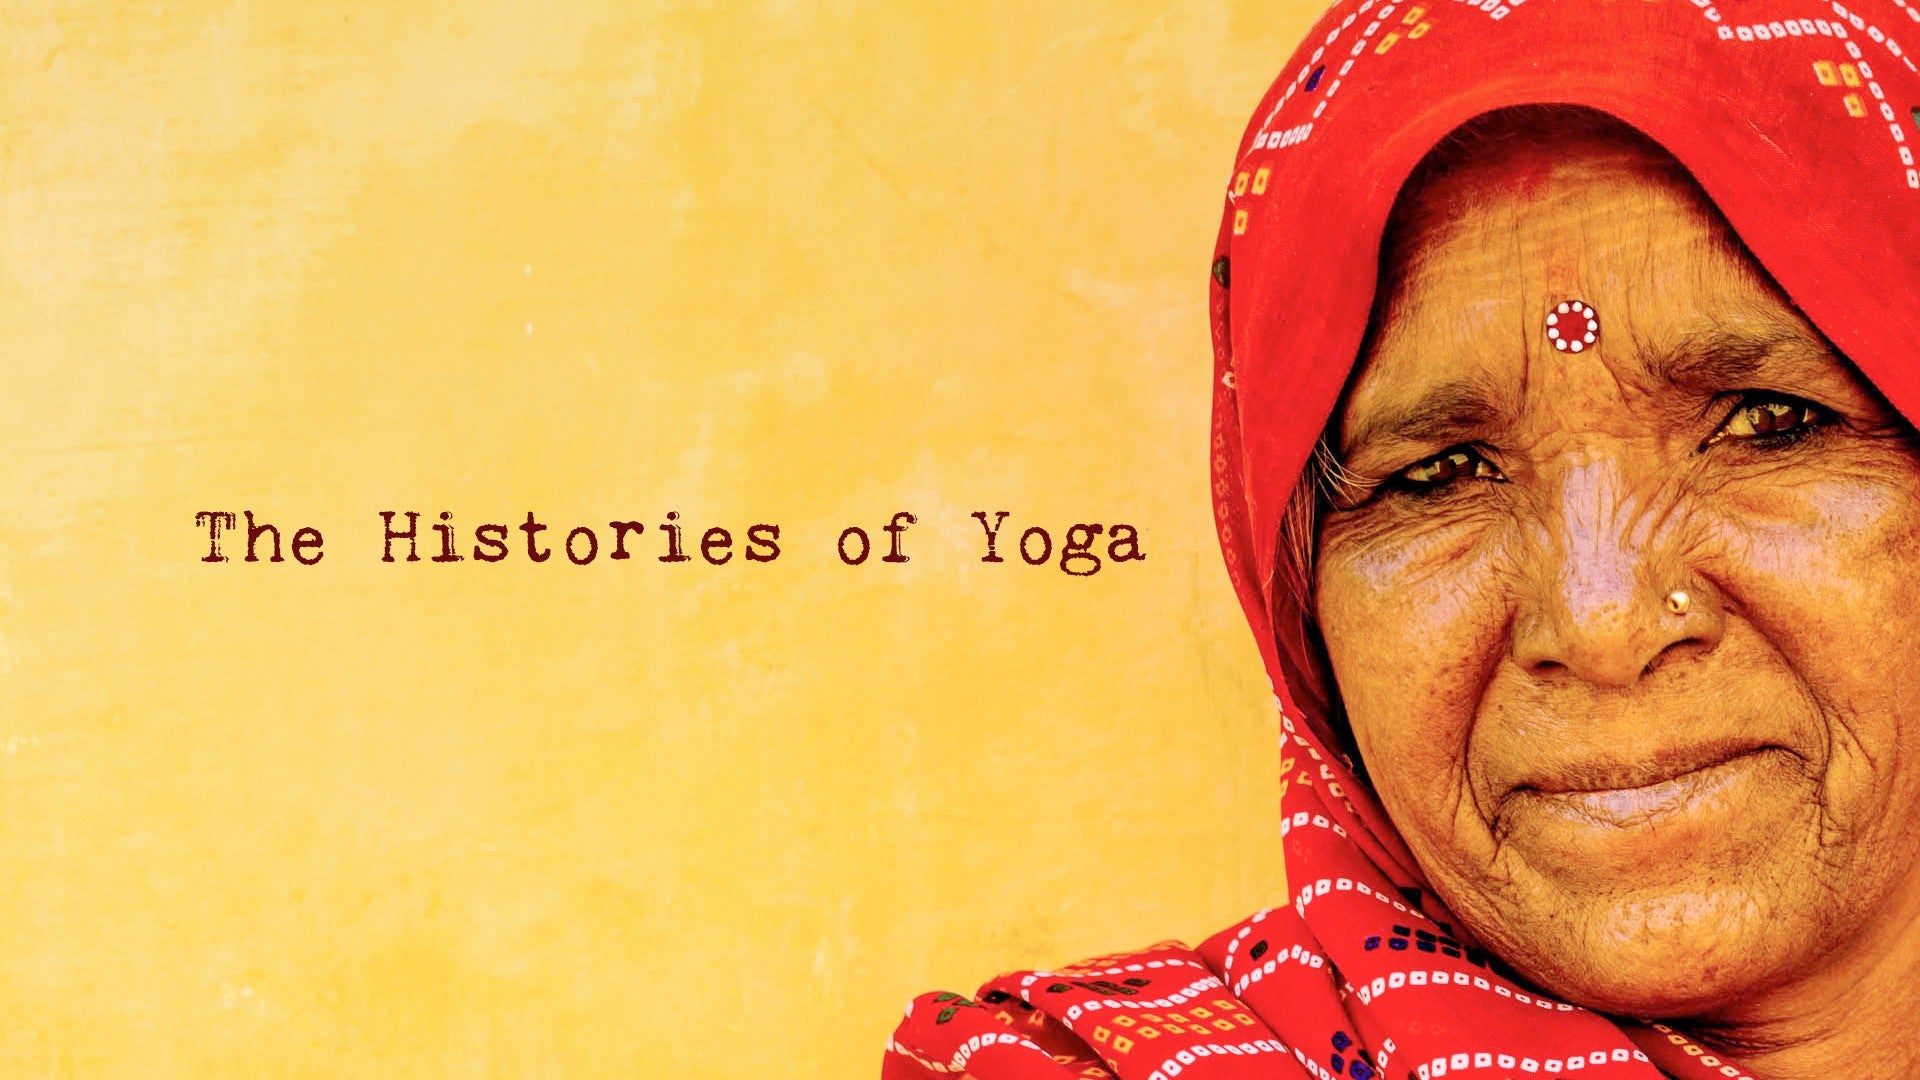 The Histories of Yoga Artwork